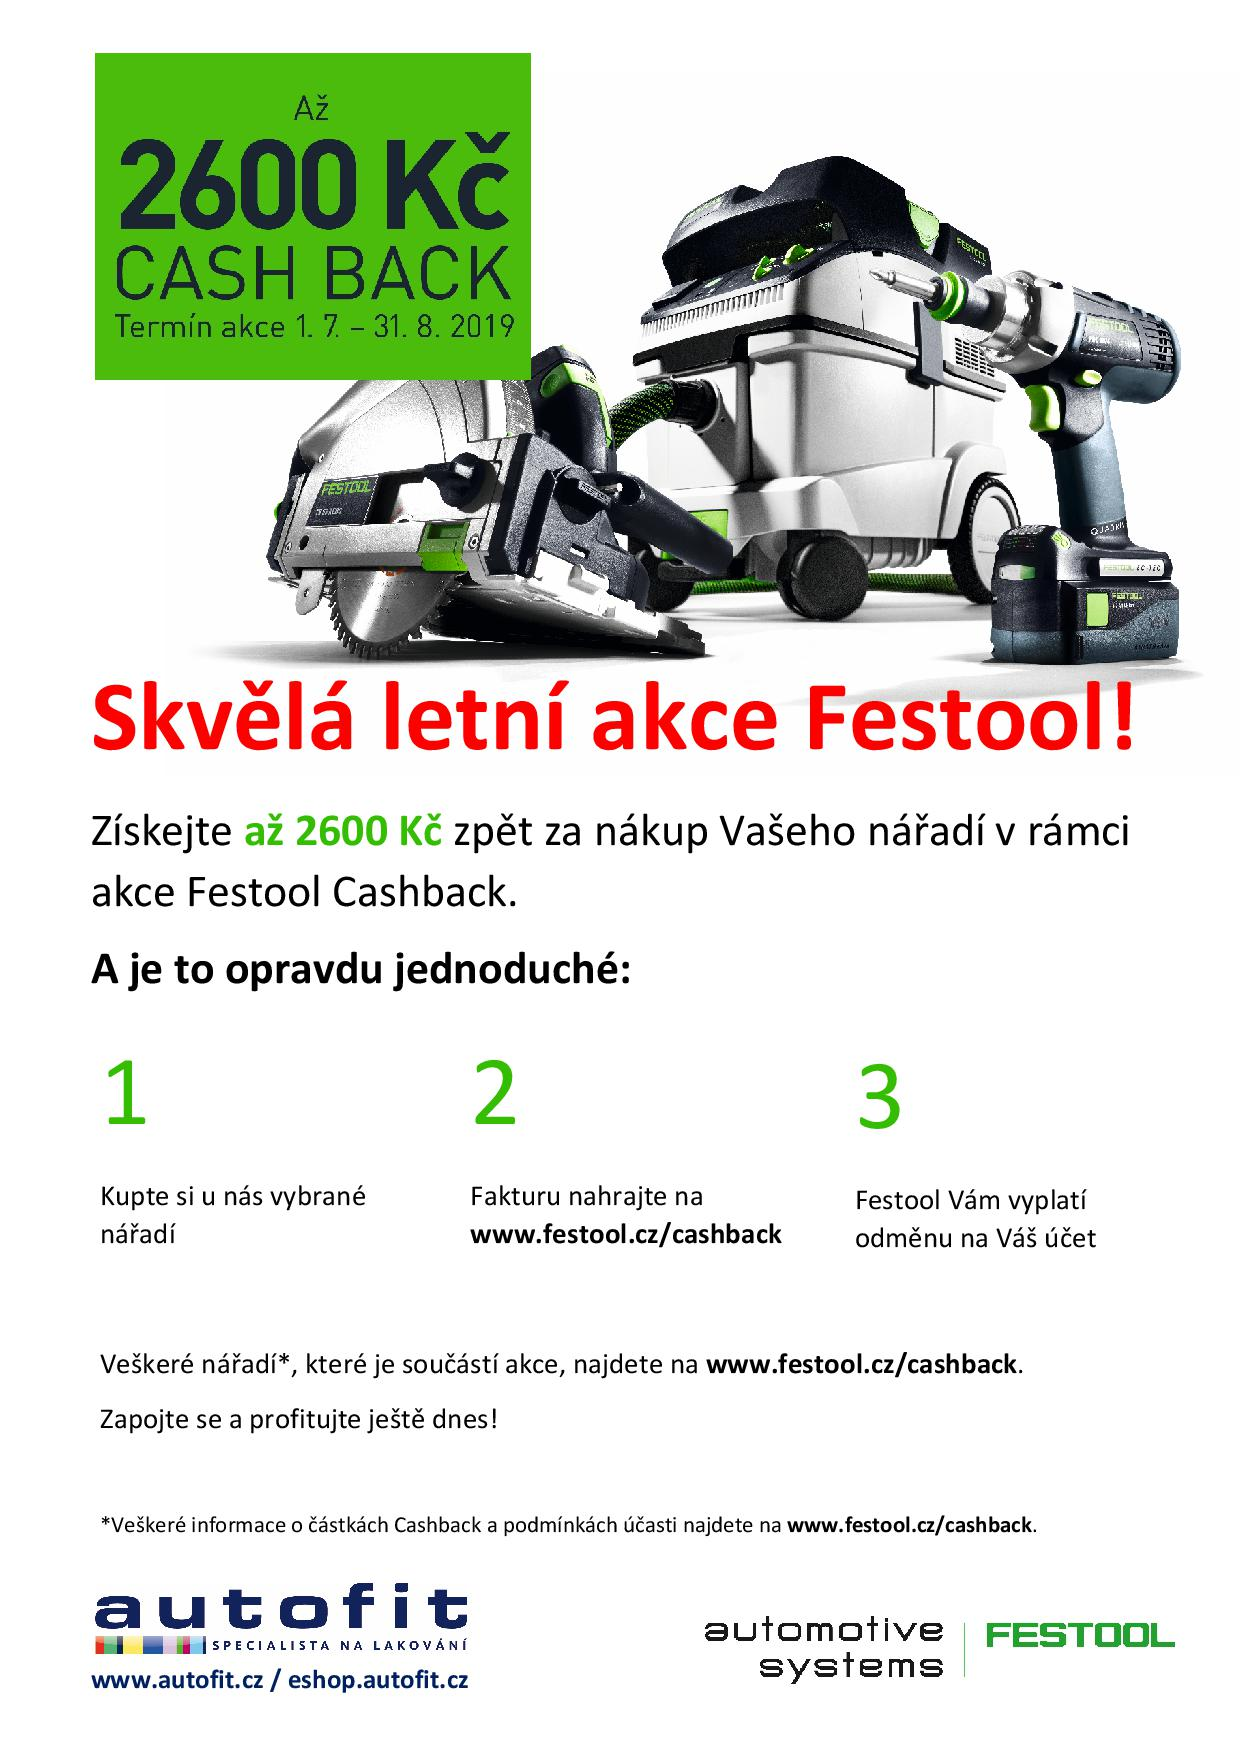 Festool cashback Auto Fit